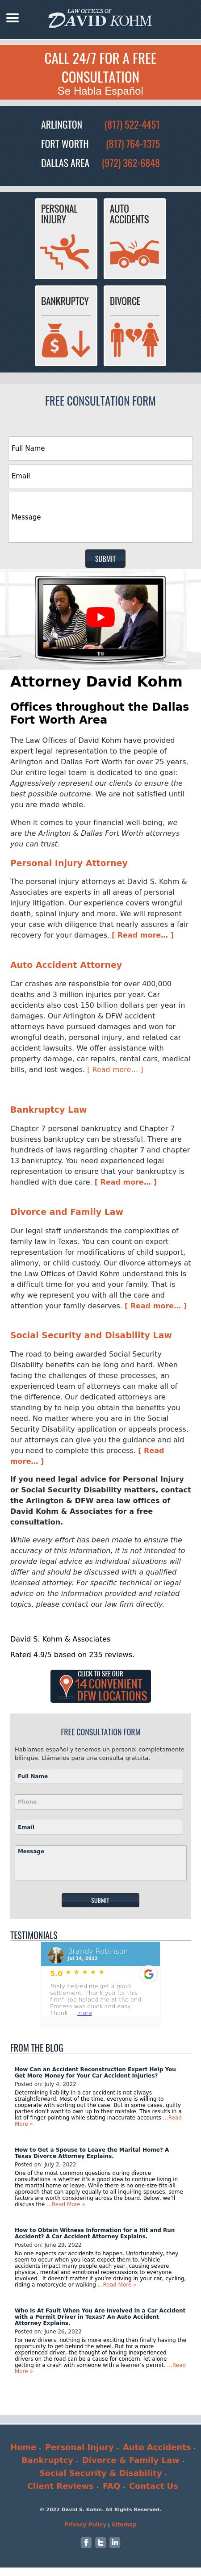 David S Kohm & Associates - Arlington TX Lawyers